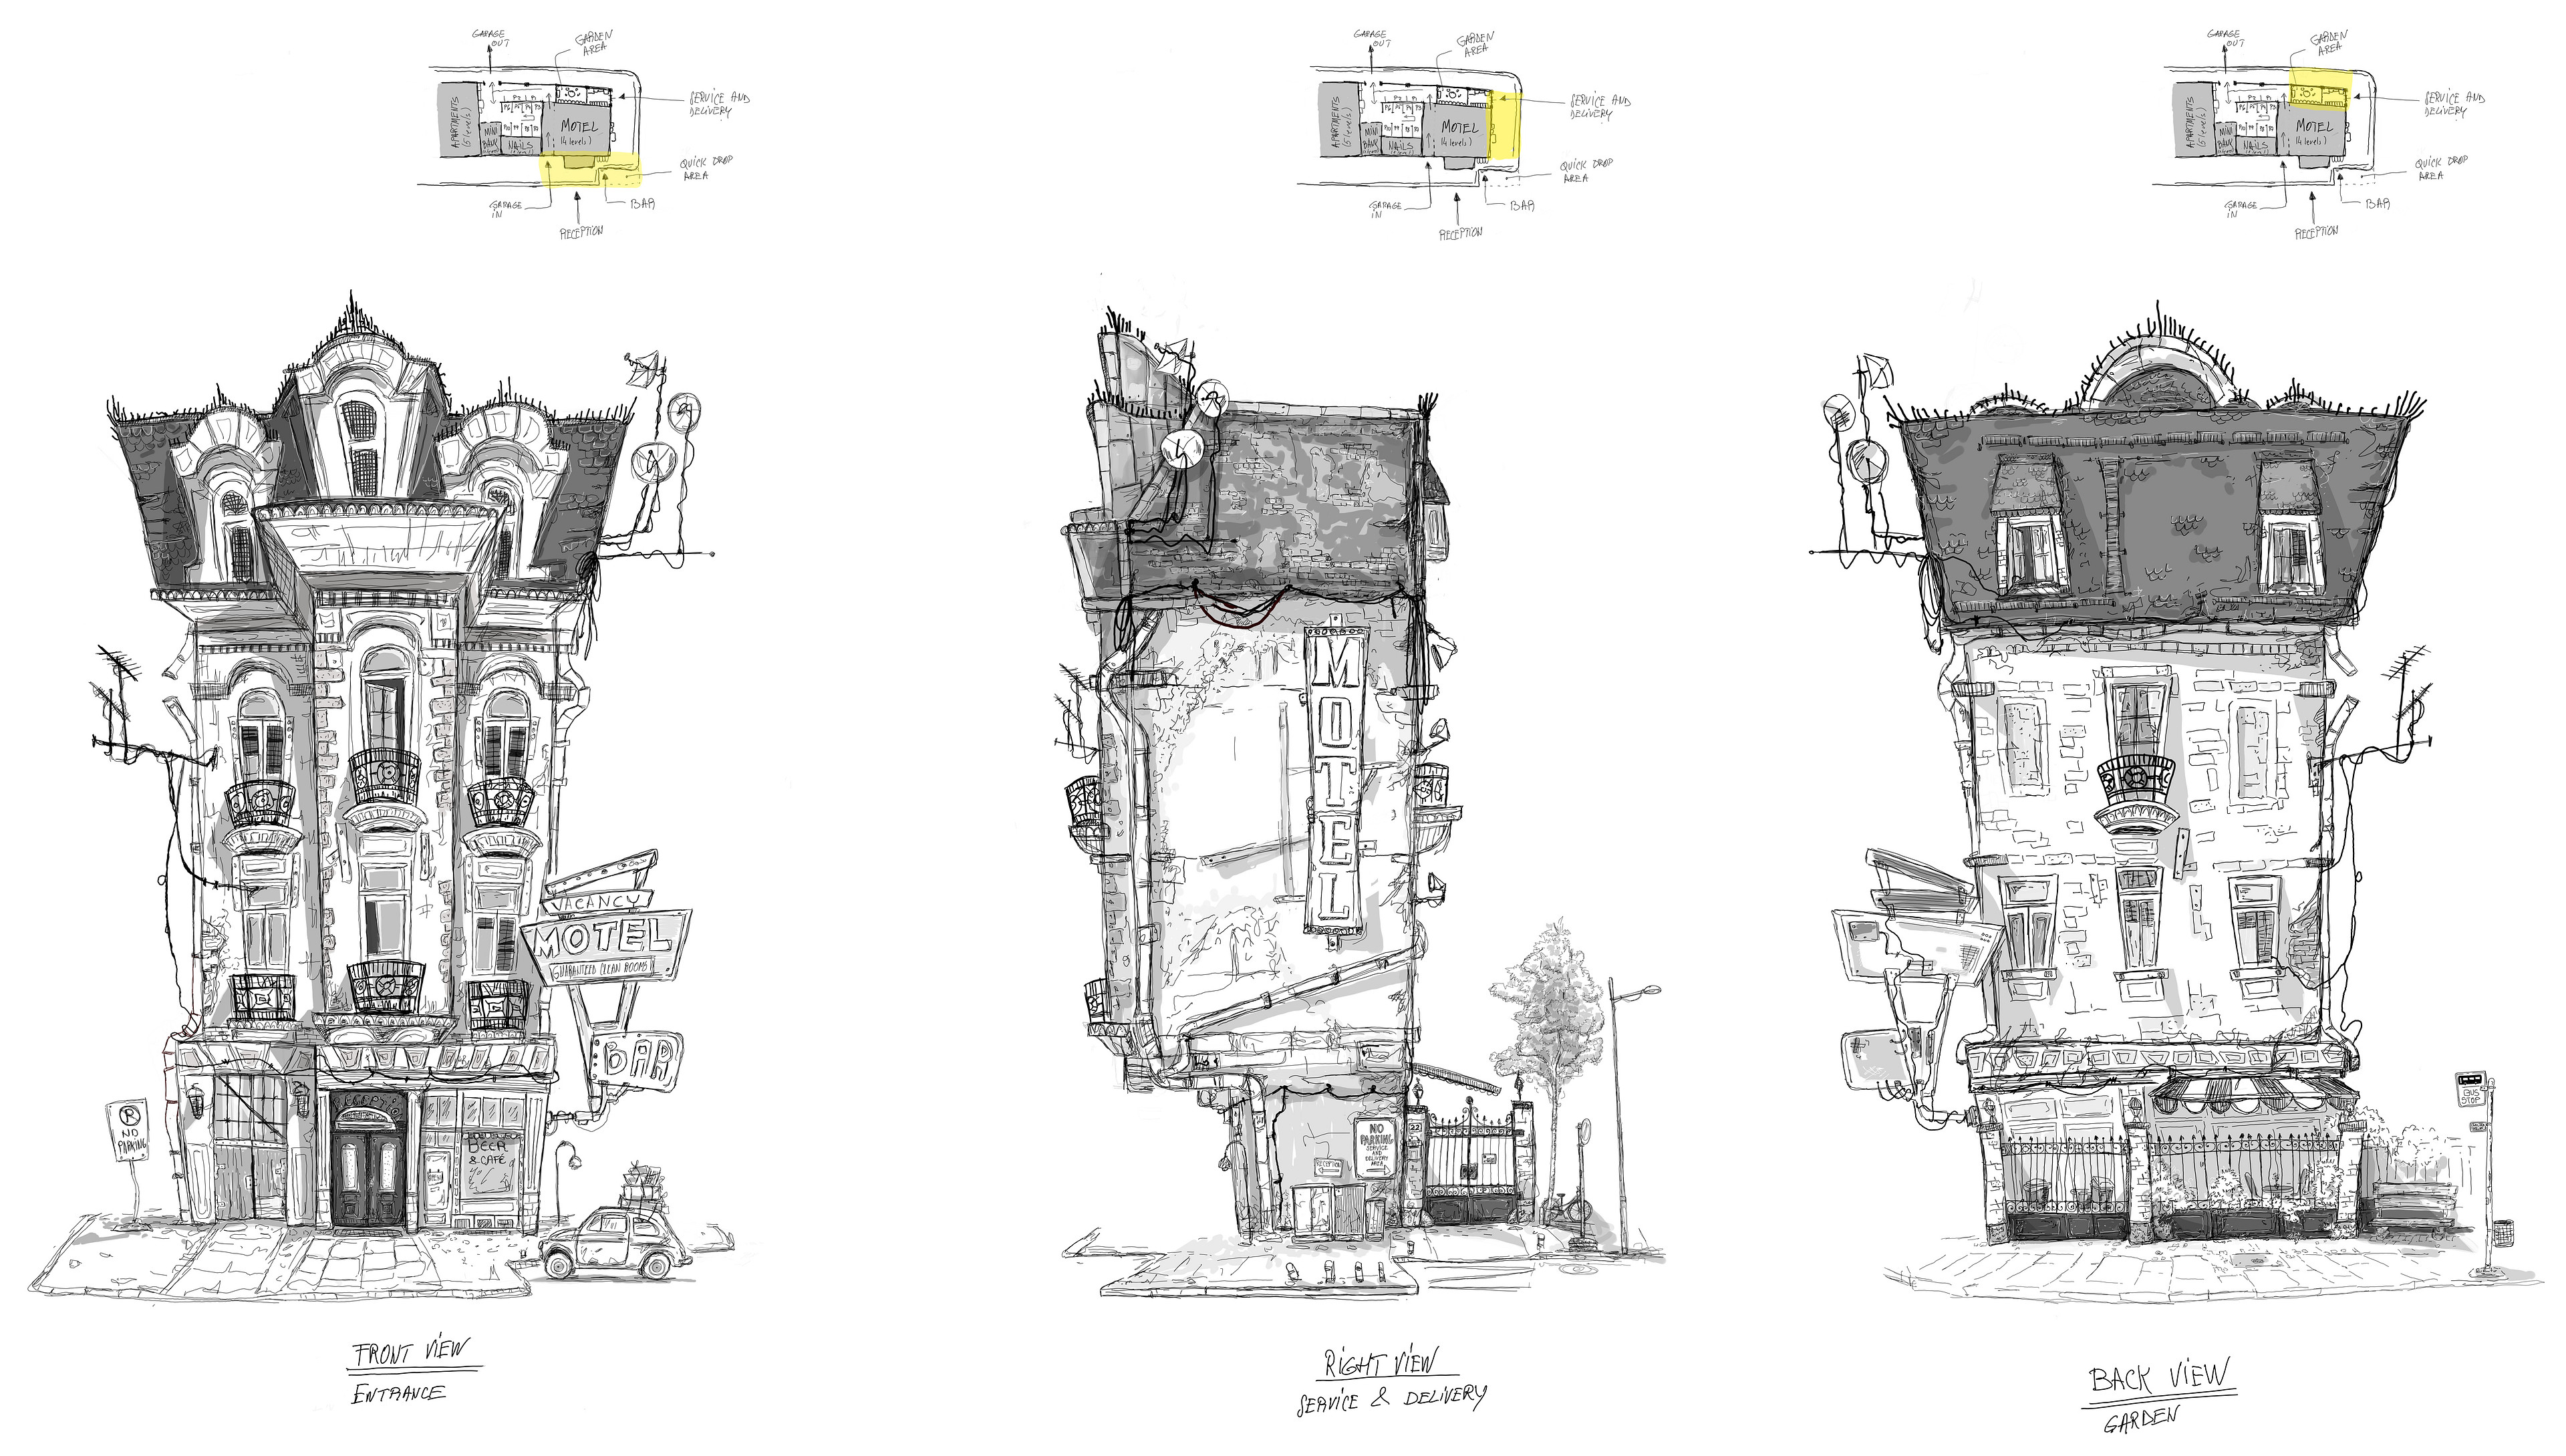 Concept Sketch of the Motel, Front - Right - Back orthographic views